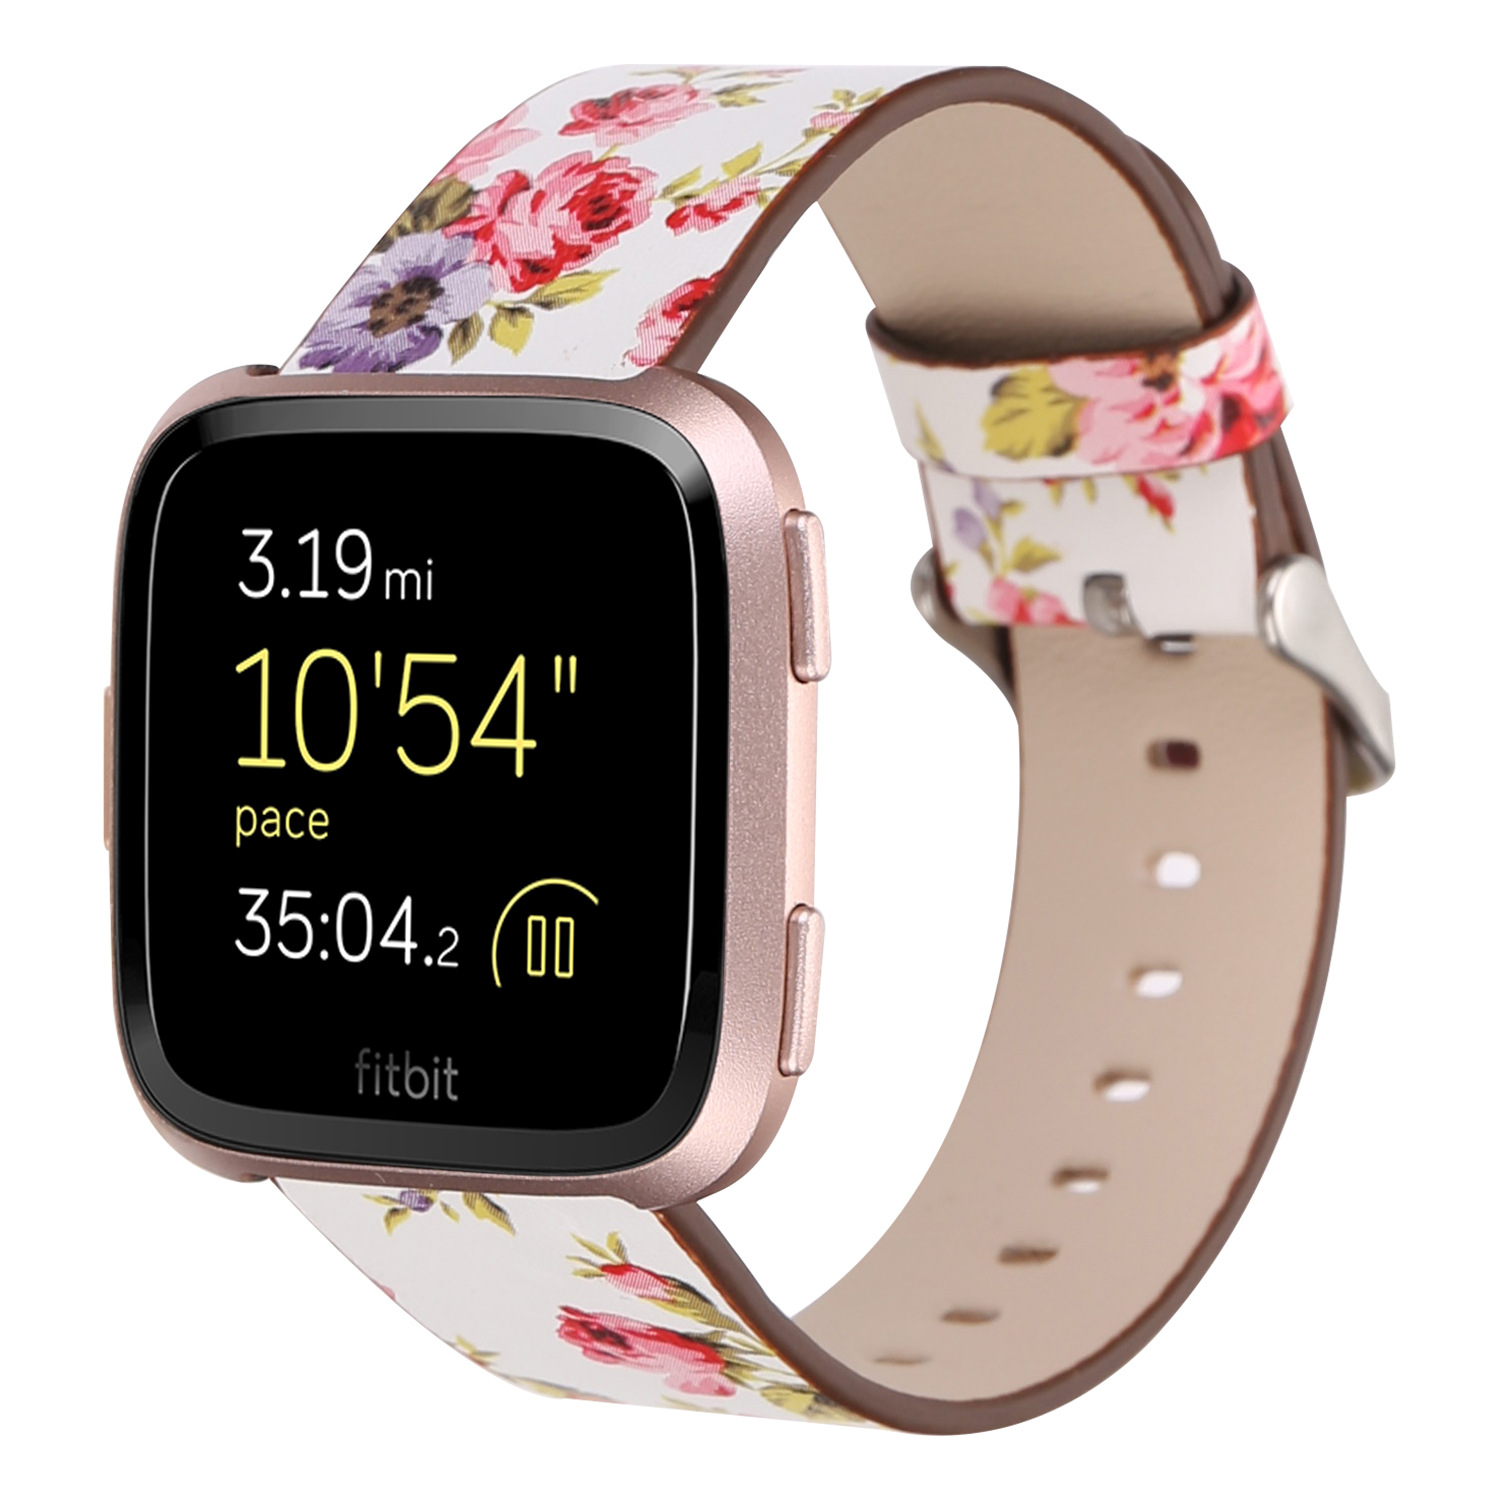 Suitable For Fitbit Versa Leather Watch Strap Fitbit Genuine Leather Pastoral Style Printed New Style Floral-Print Watch Strap